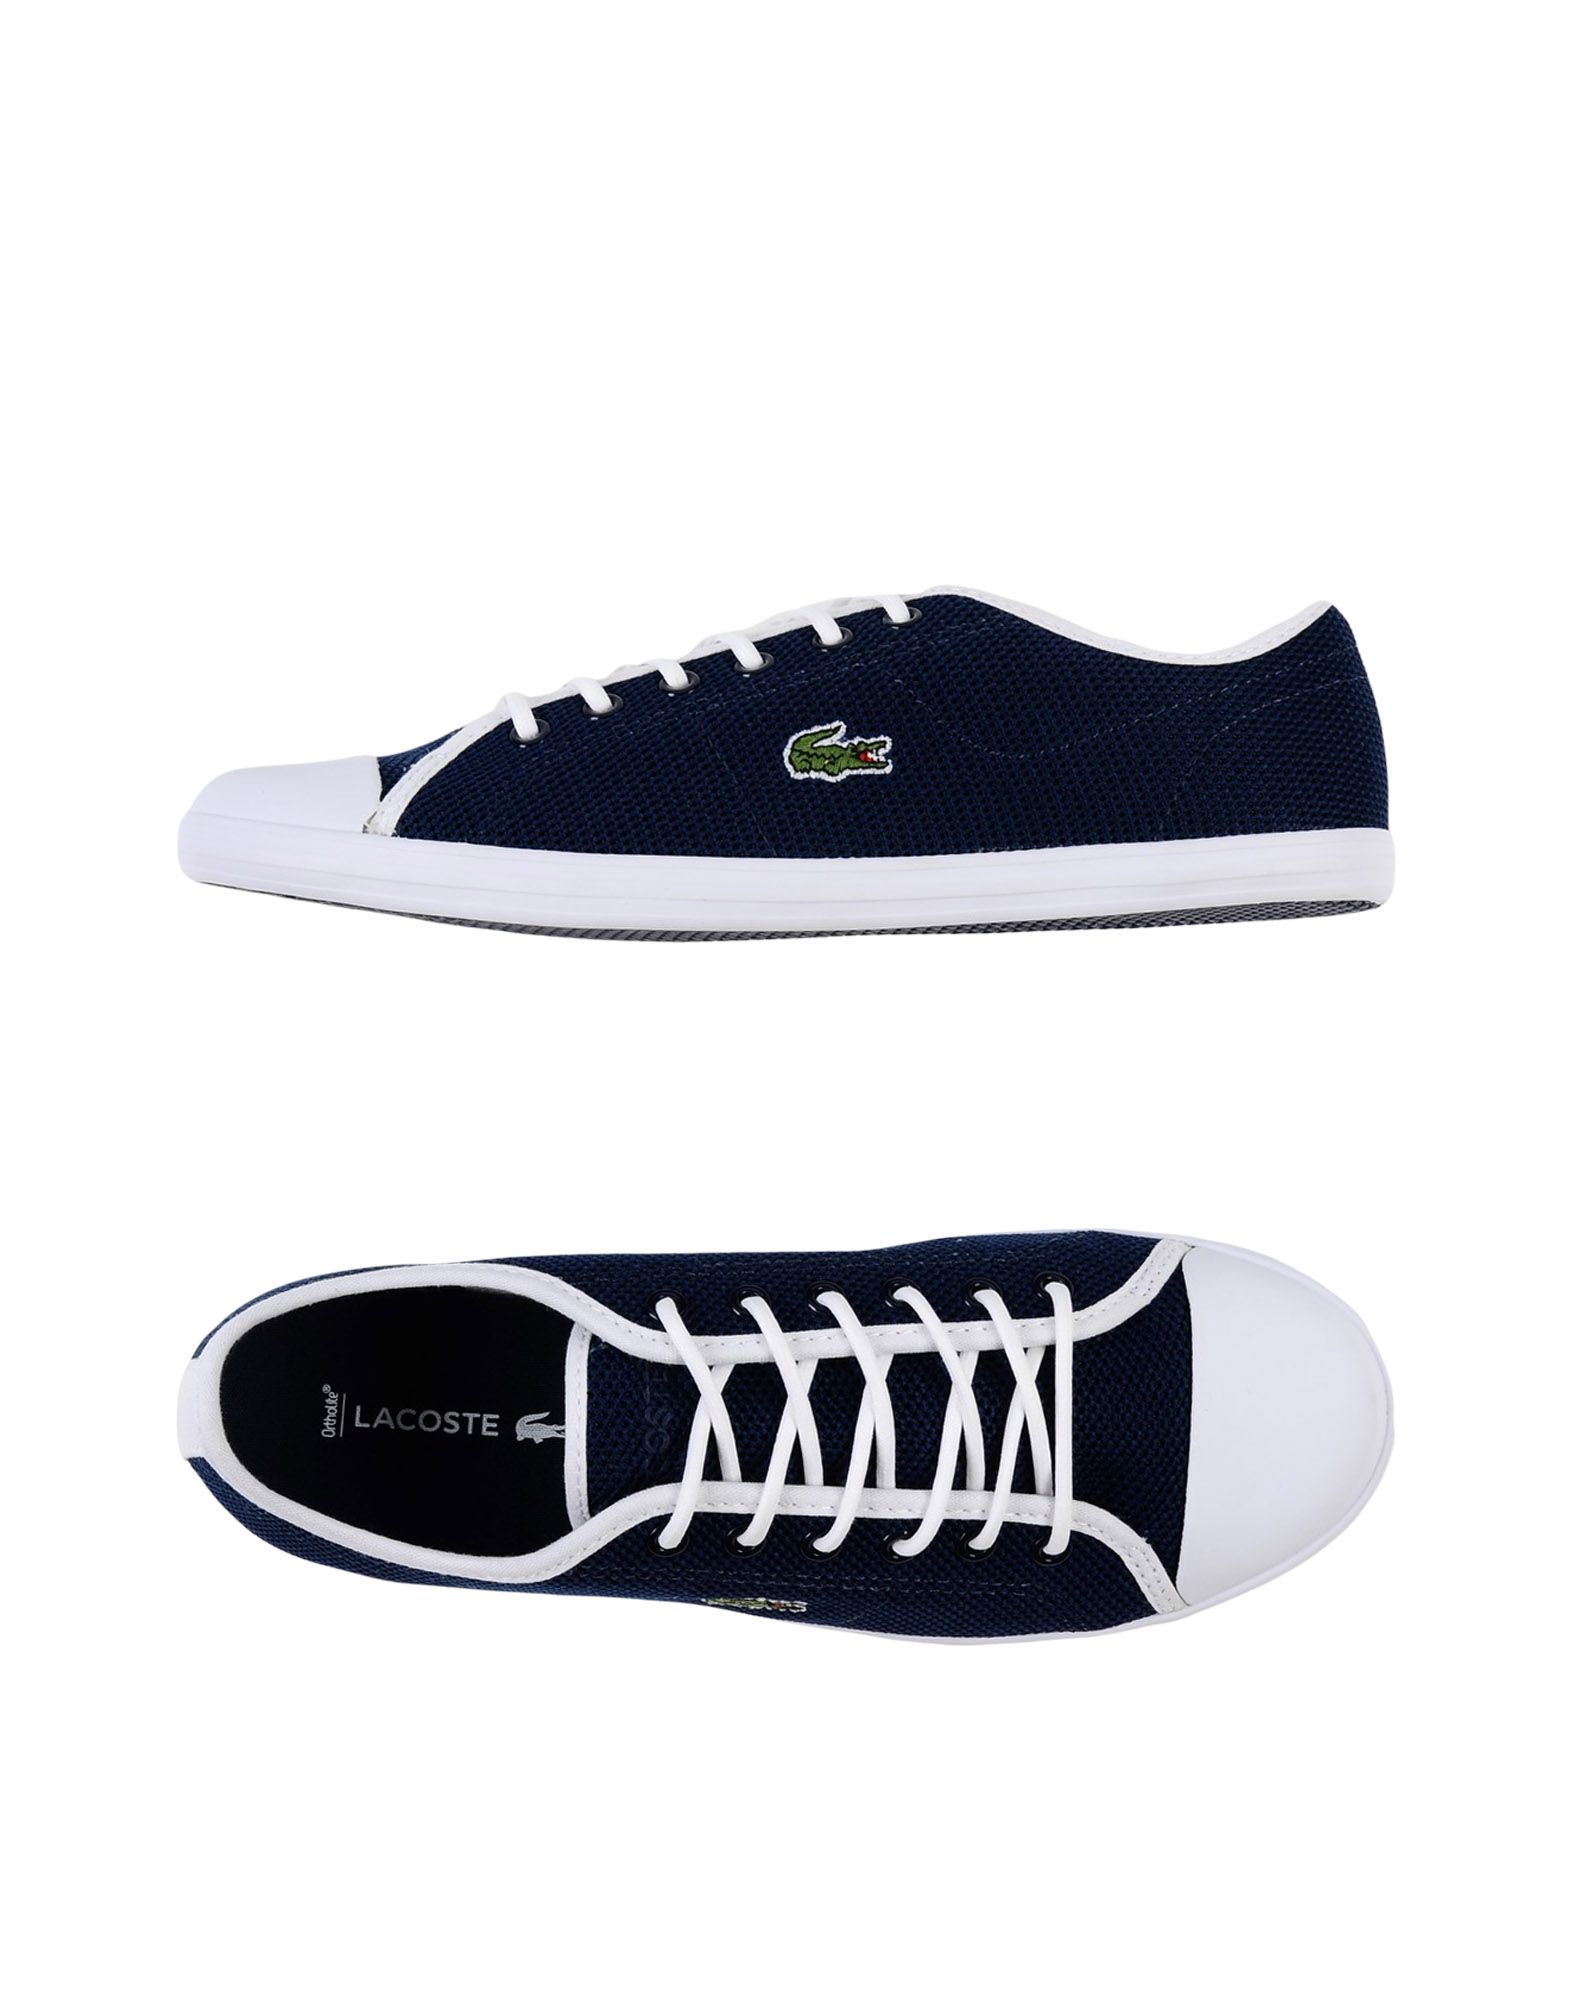 Lacoste Sneakers Damen   Damen 11394993SO  049594